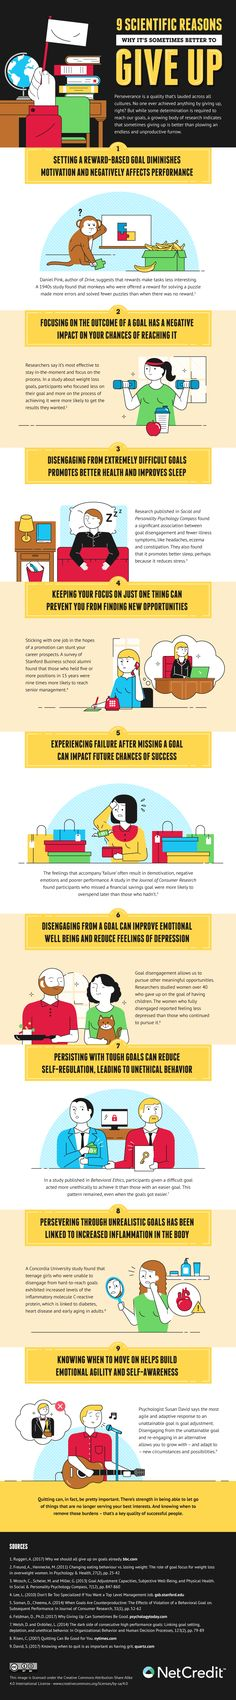 9 Scientific Reasons Why It's Sometimes Better to Give Up - #infographic / Digital Information World